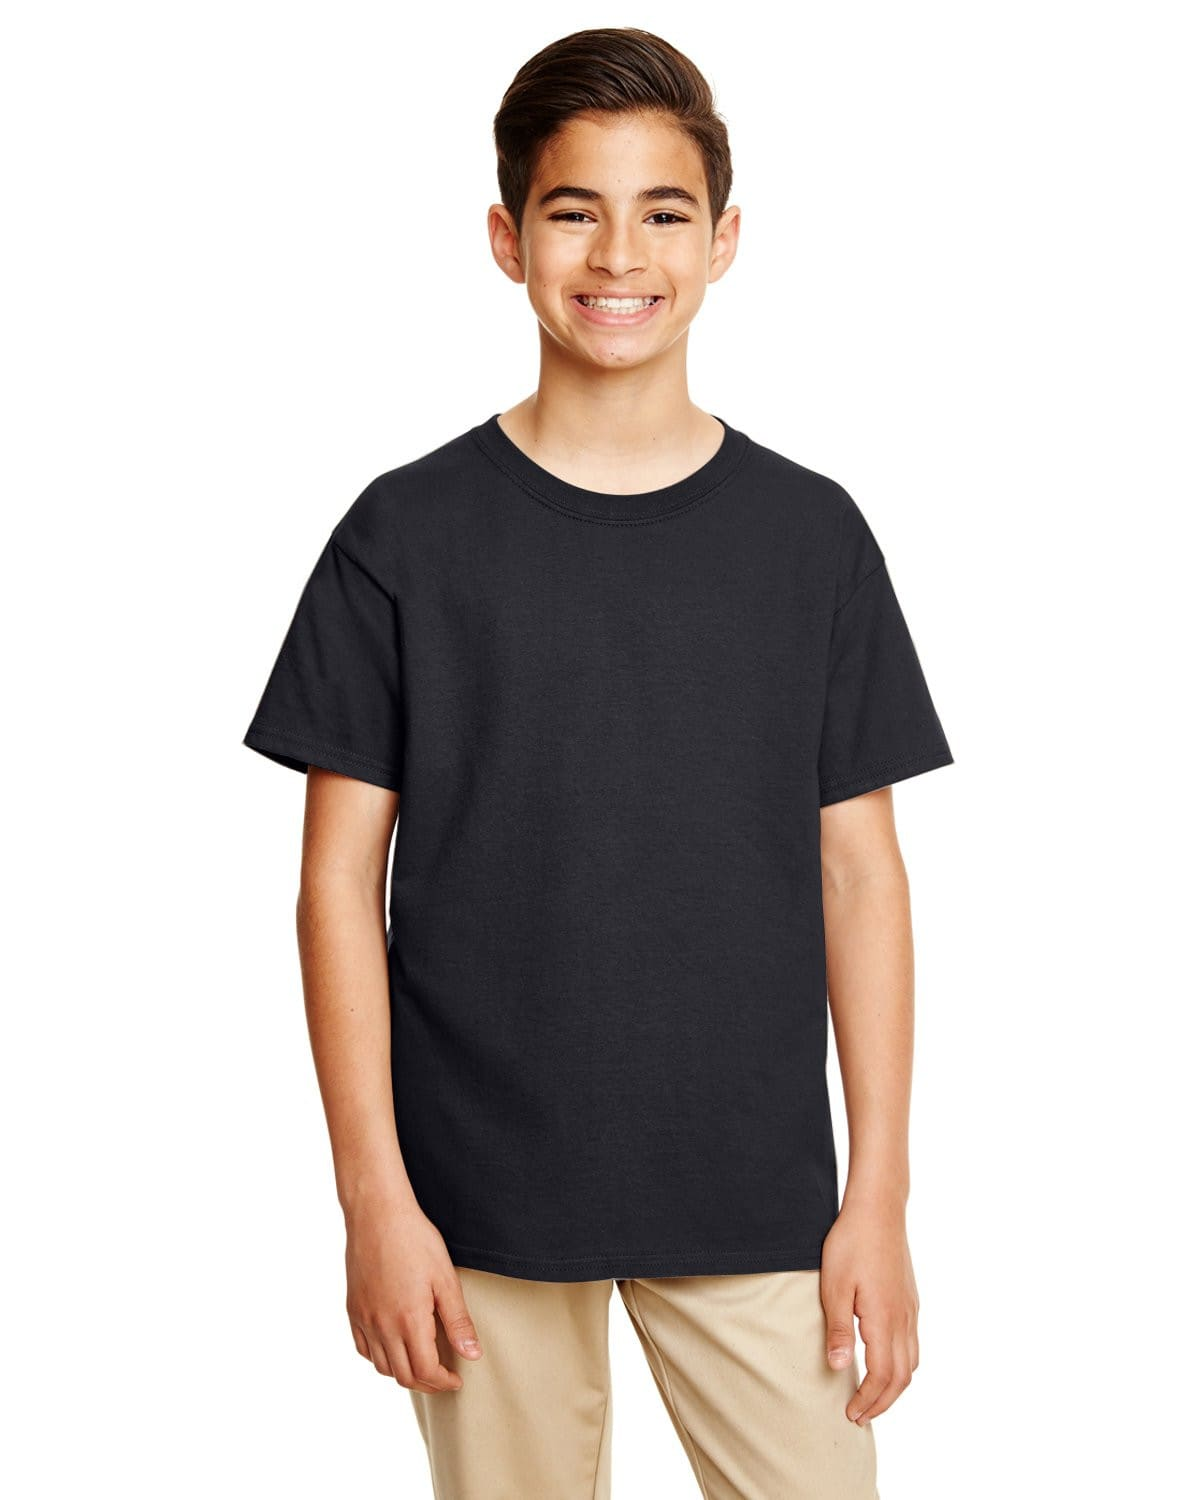 g645b-youth-softstyle-4-5-oz-t-shirt-xl-XL-BLACK-Oasispromos